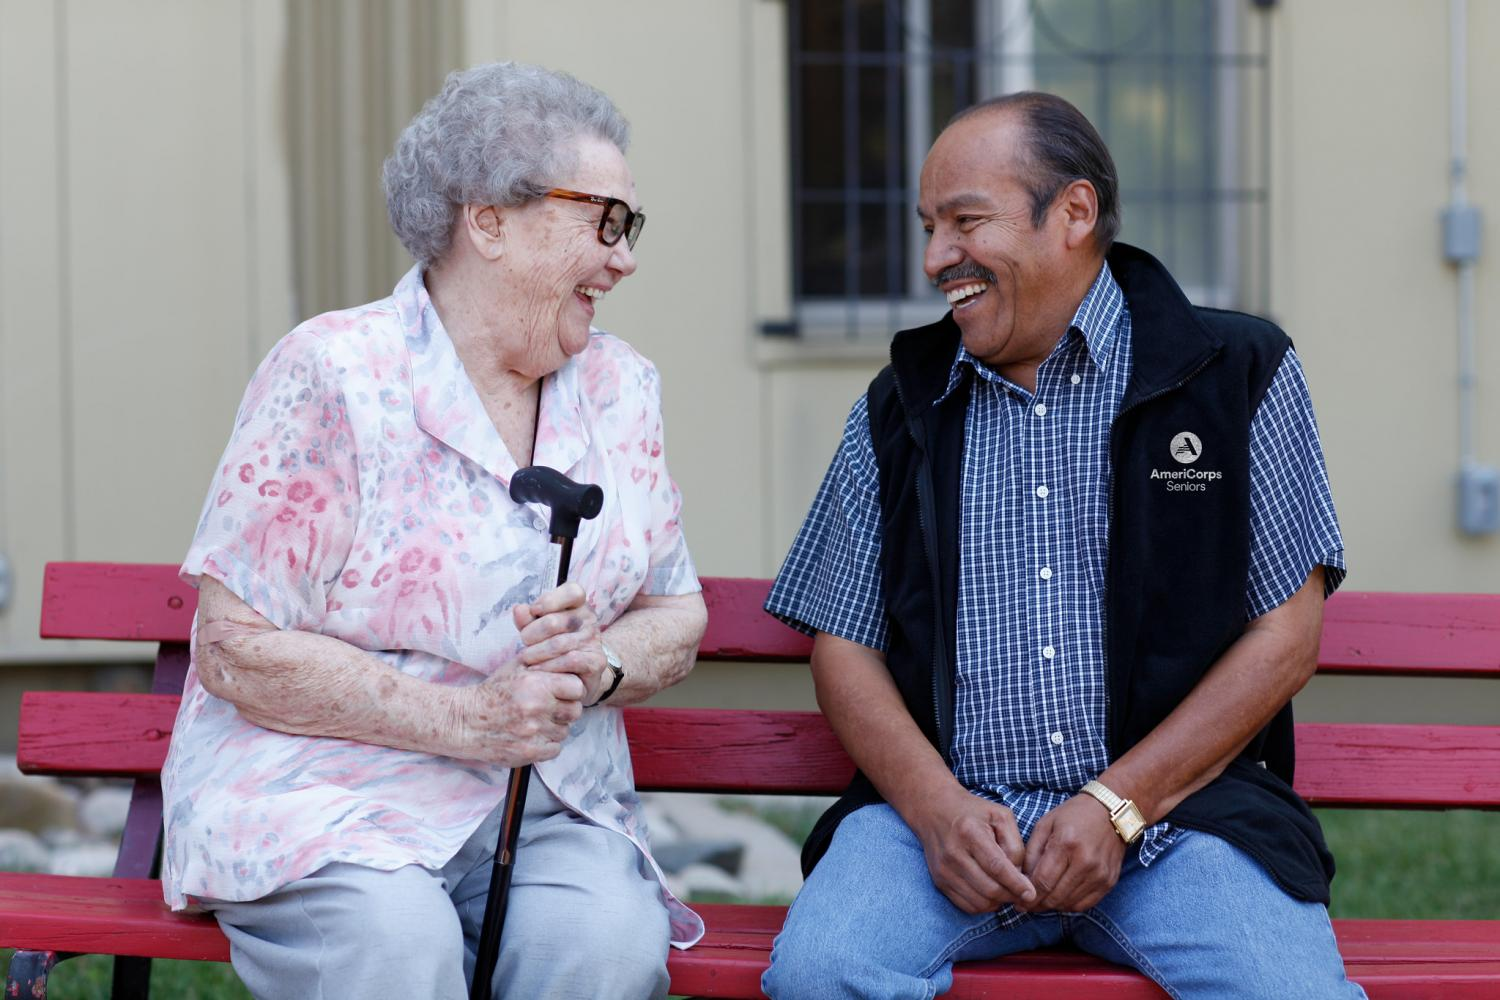 An AmeriCorps Seniors volunteer talks to a smiling woman